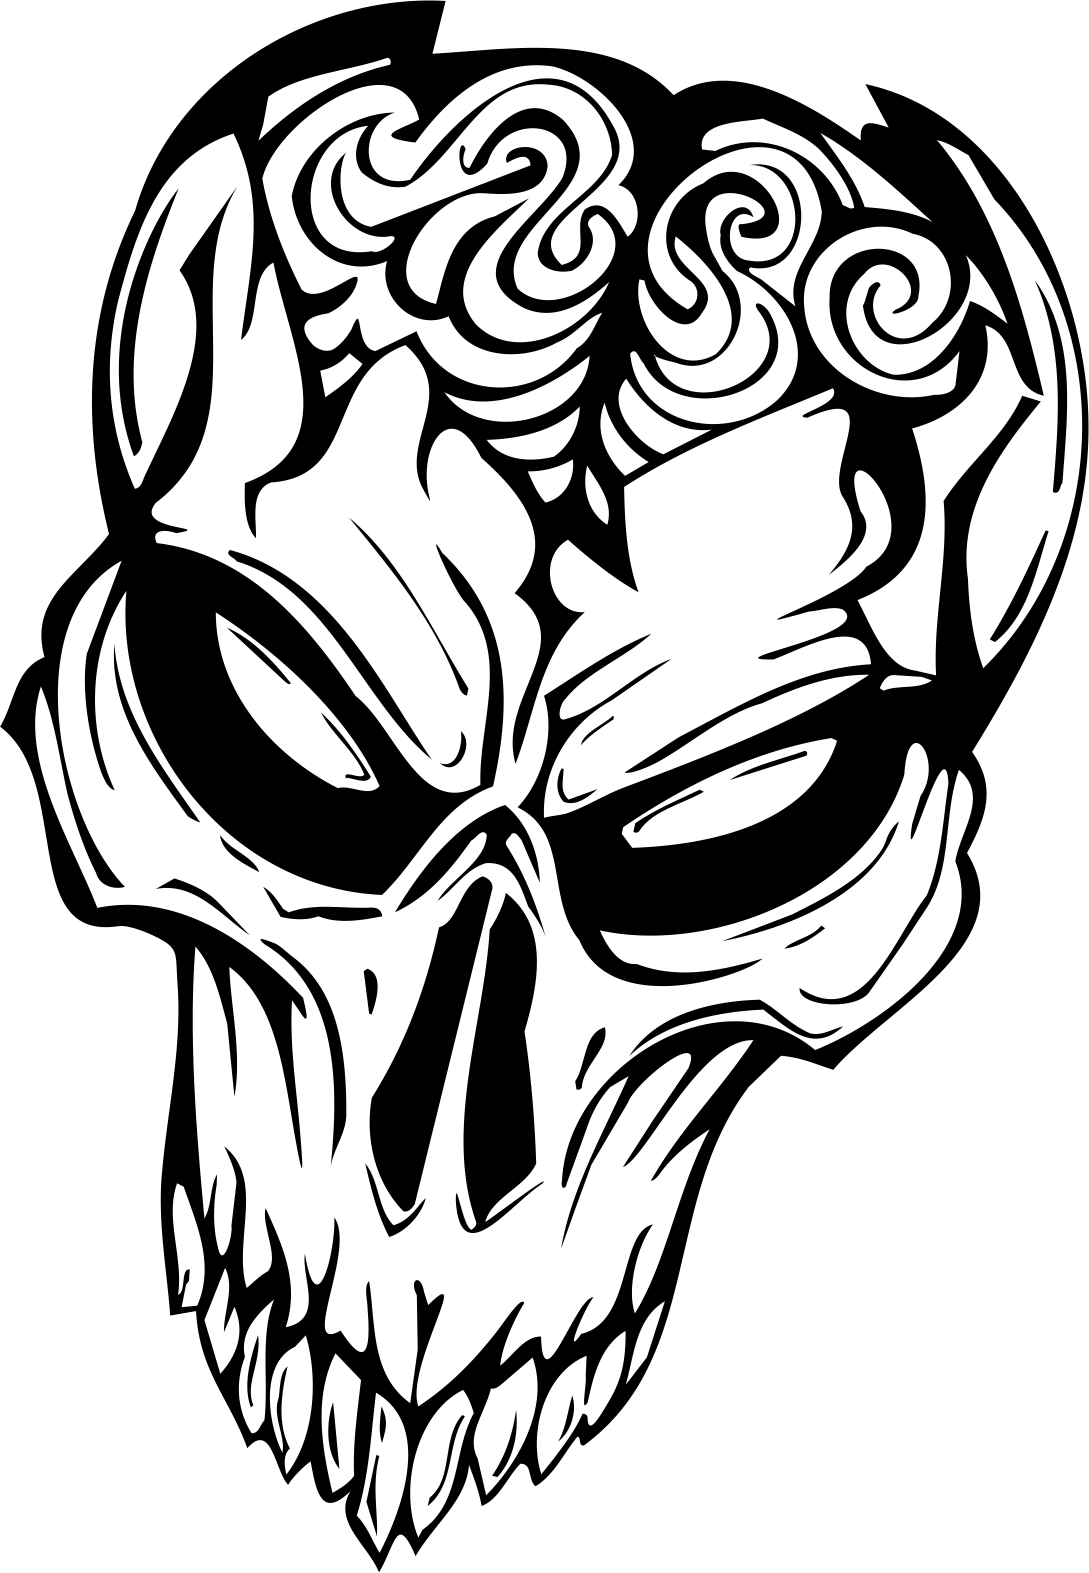 day of the dead coloring pages - Monster Masken mscull 001